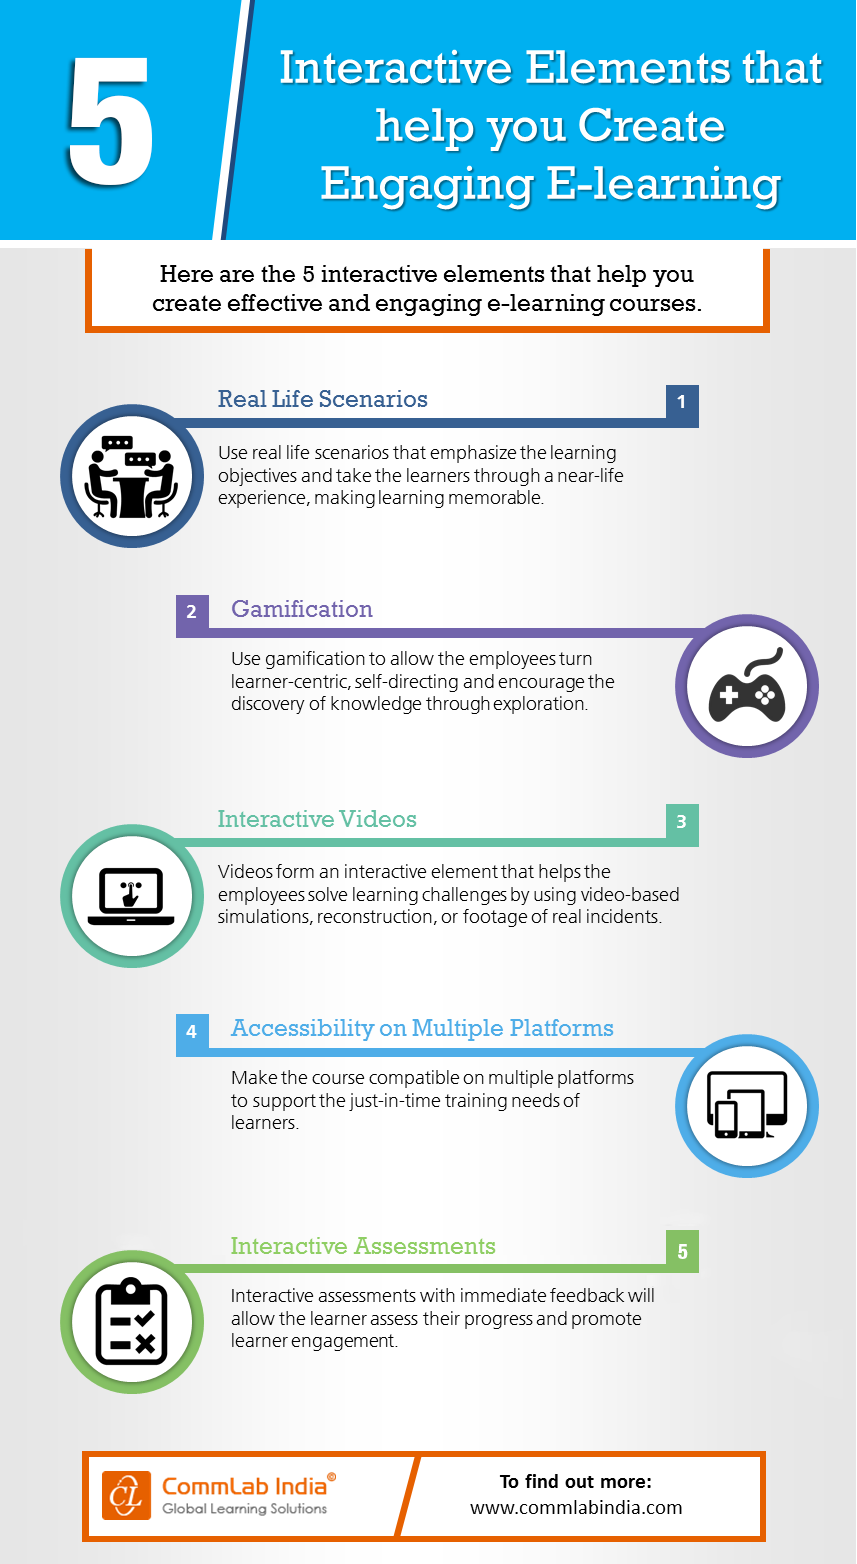 5 Interactive Elements that Help You Create Engaging E-learning [Infographic]